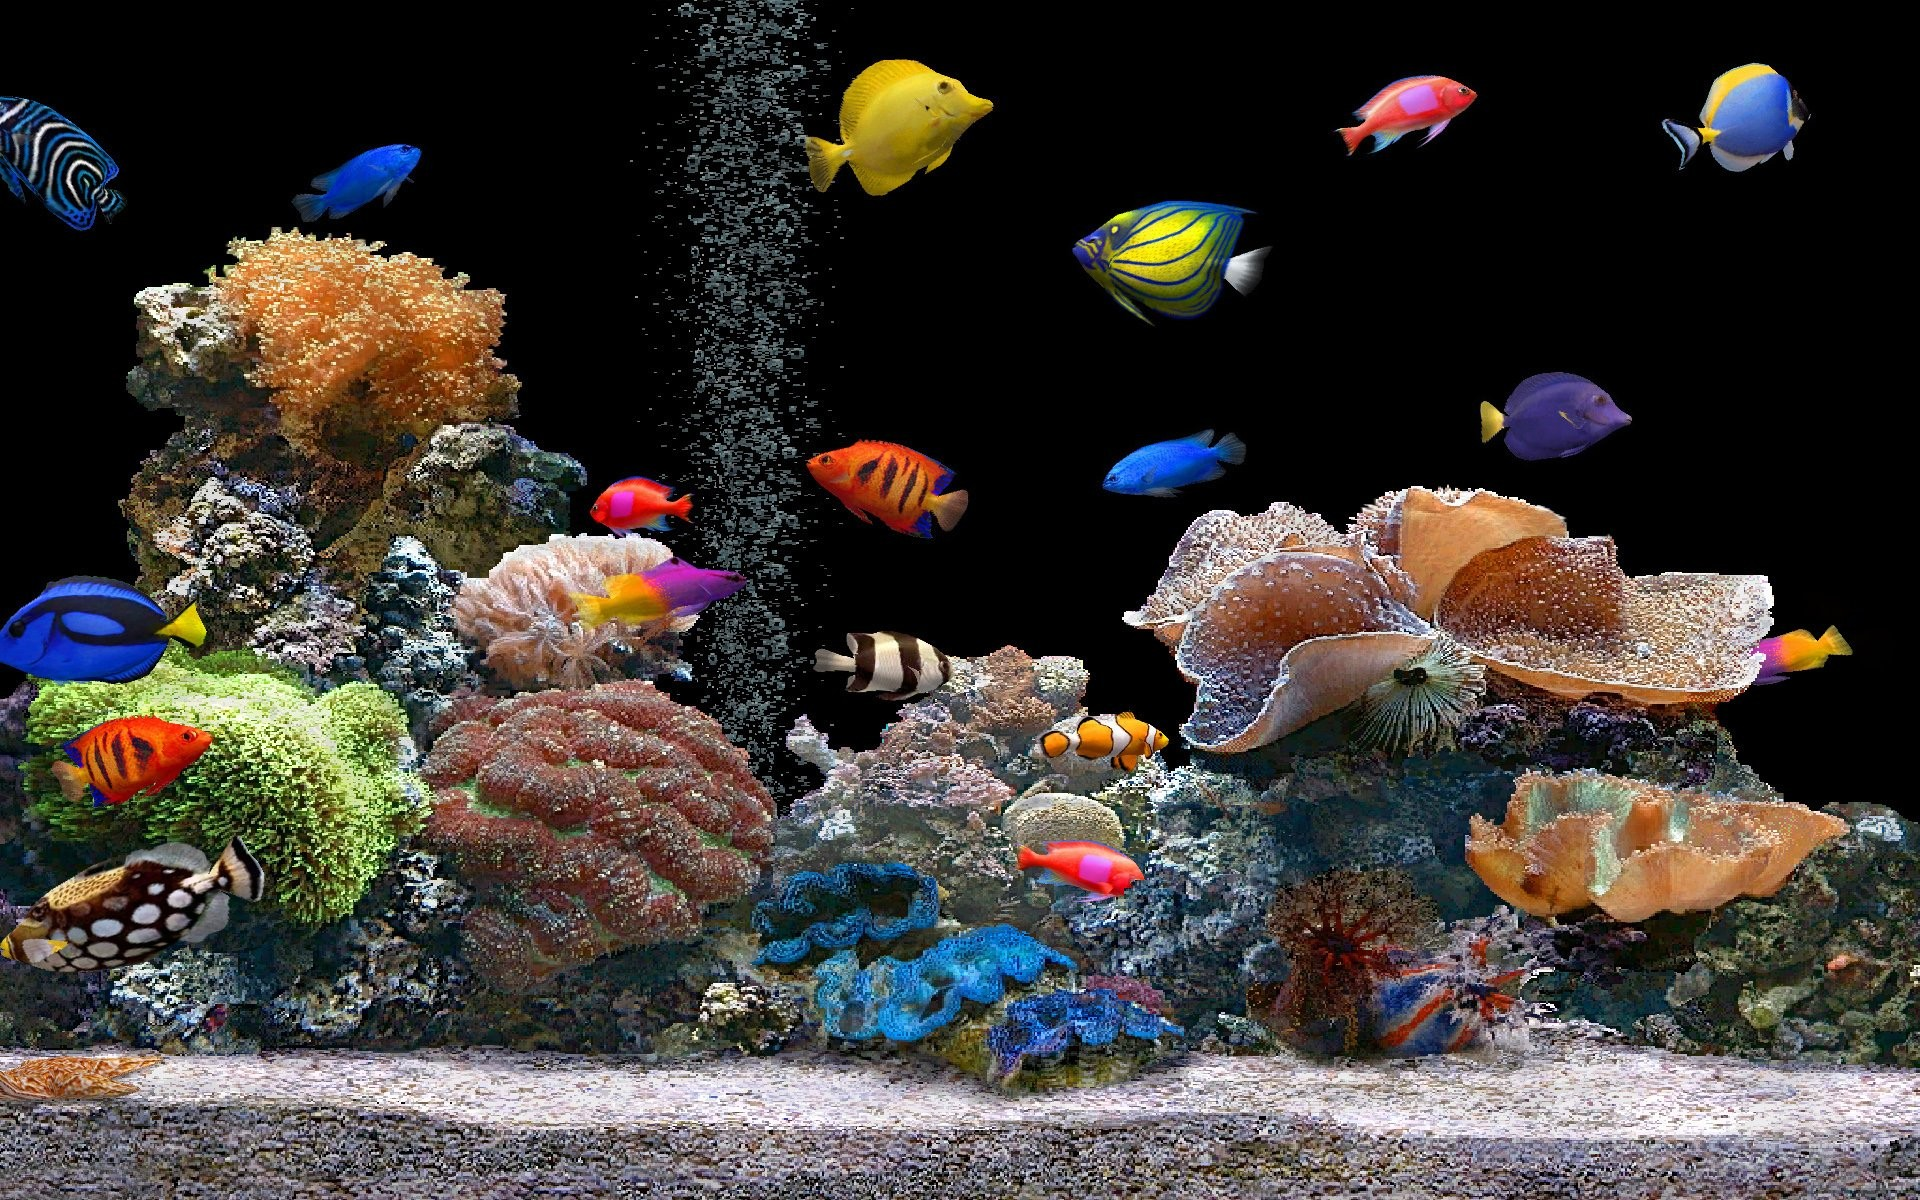 Saltwater aquarium - Nature Animals Aquarium Coral Saltwater Fish Wallpaper Background